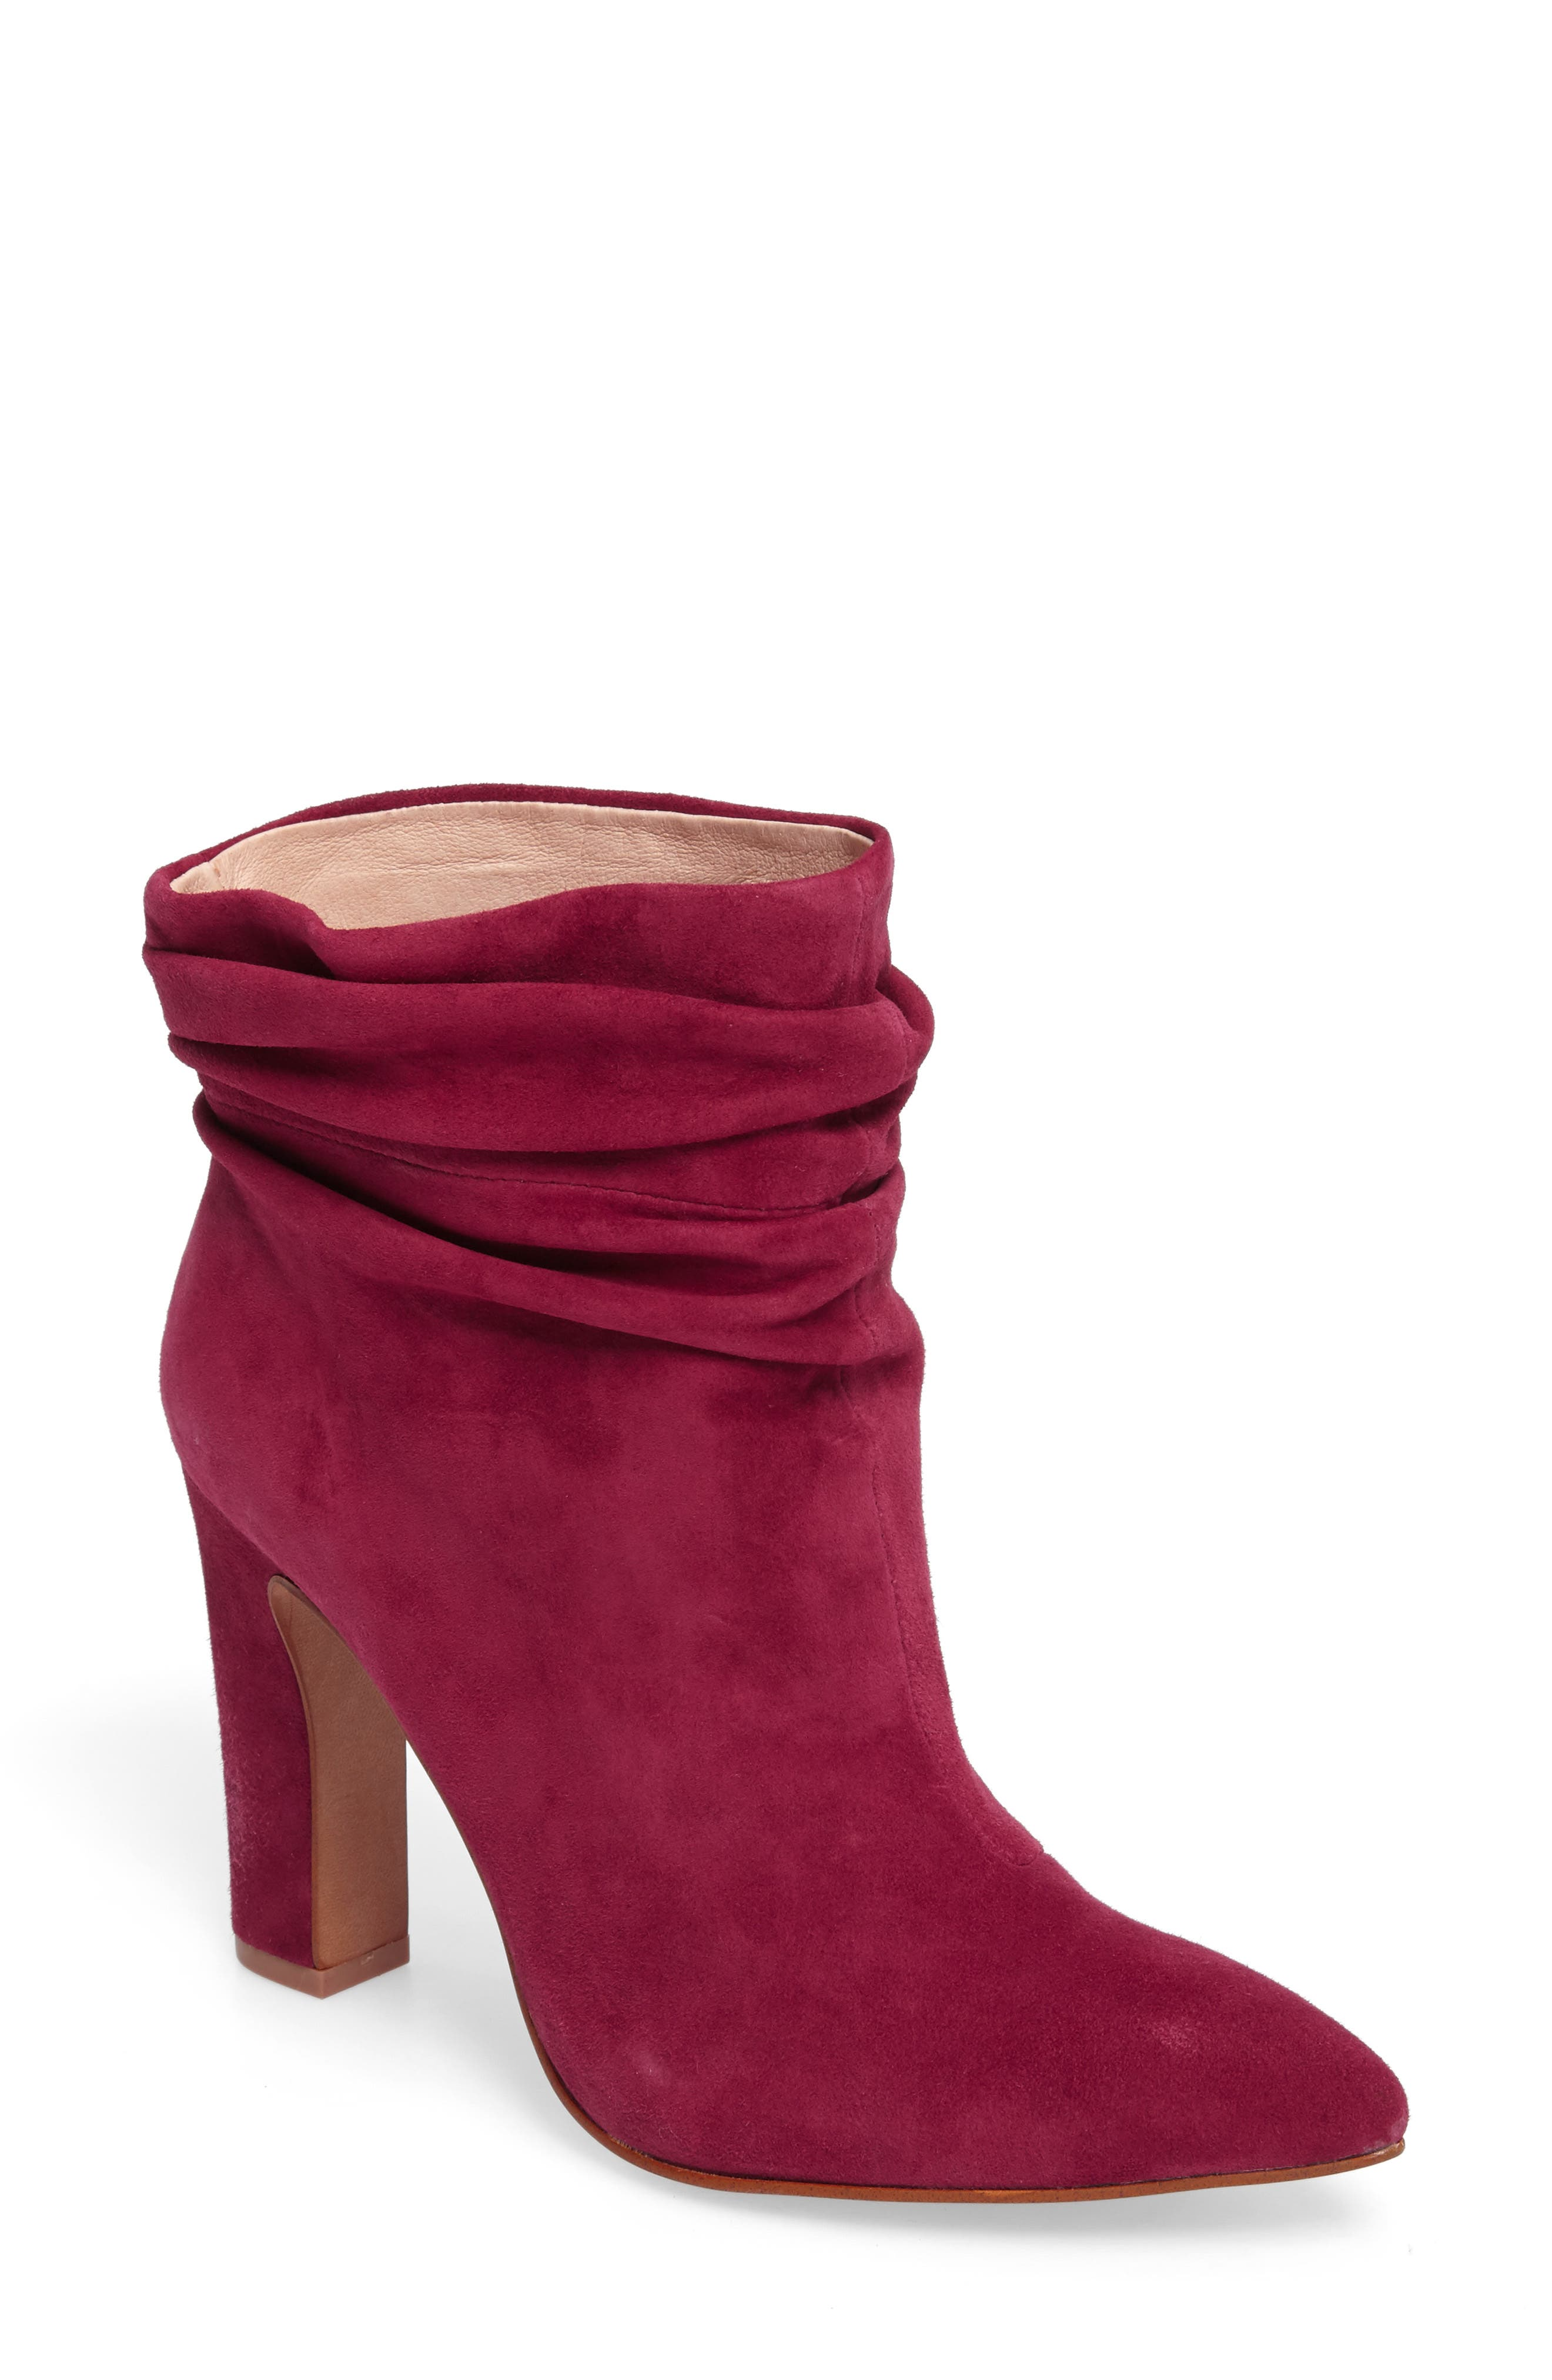 Kane Bootie,                         Main,                         color, RED SUEDE